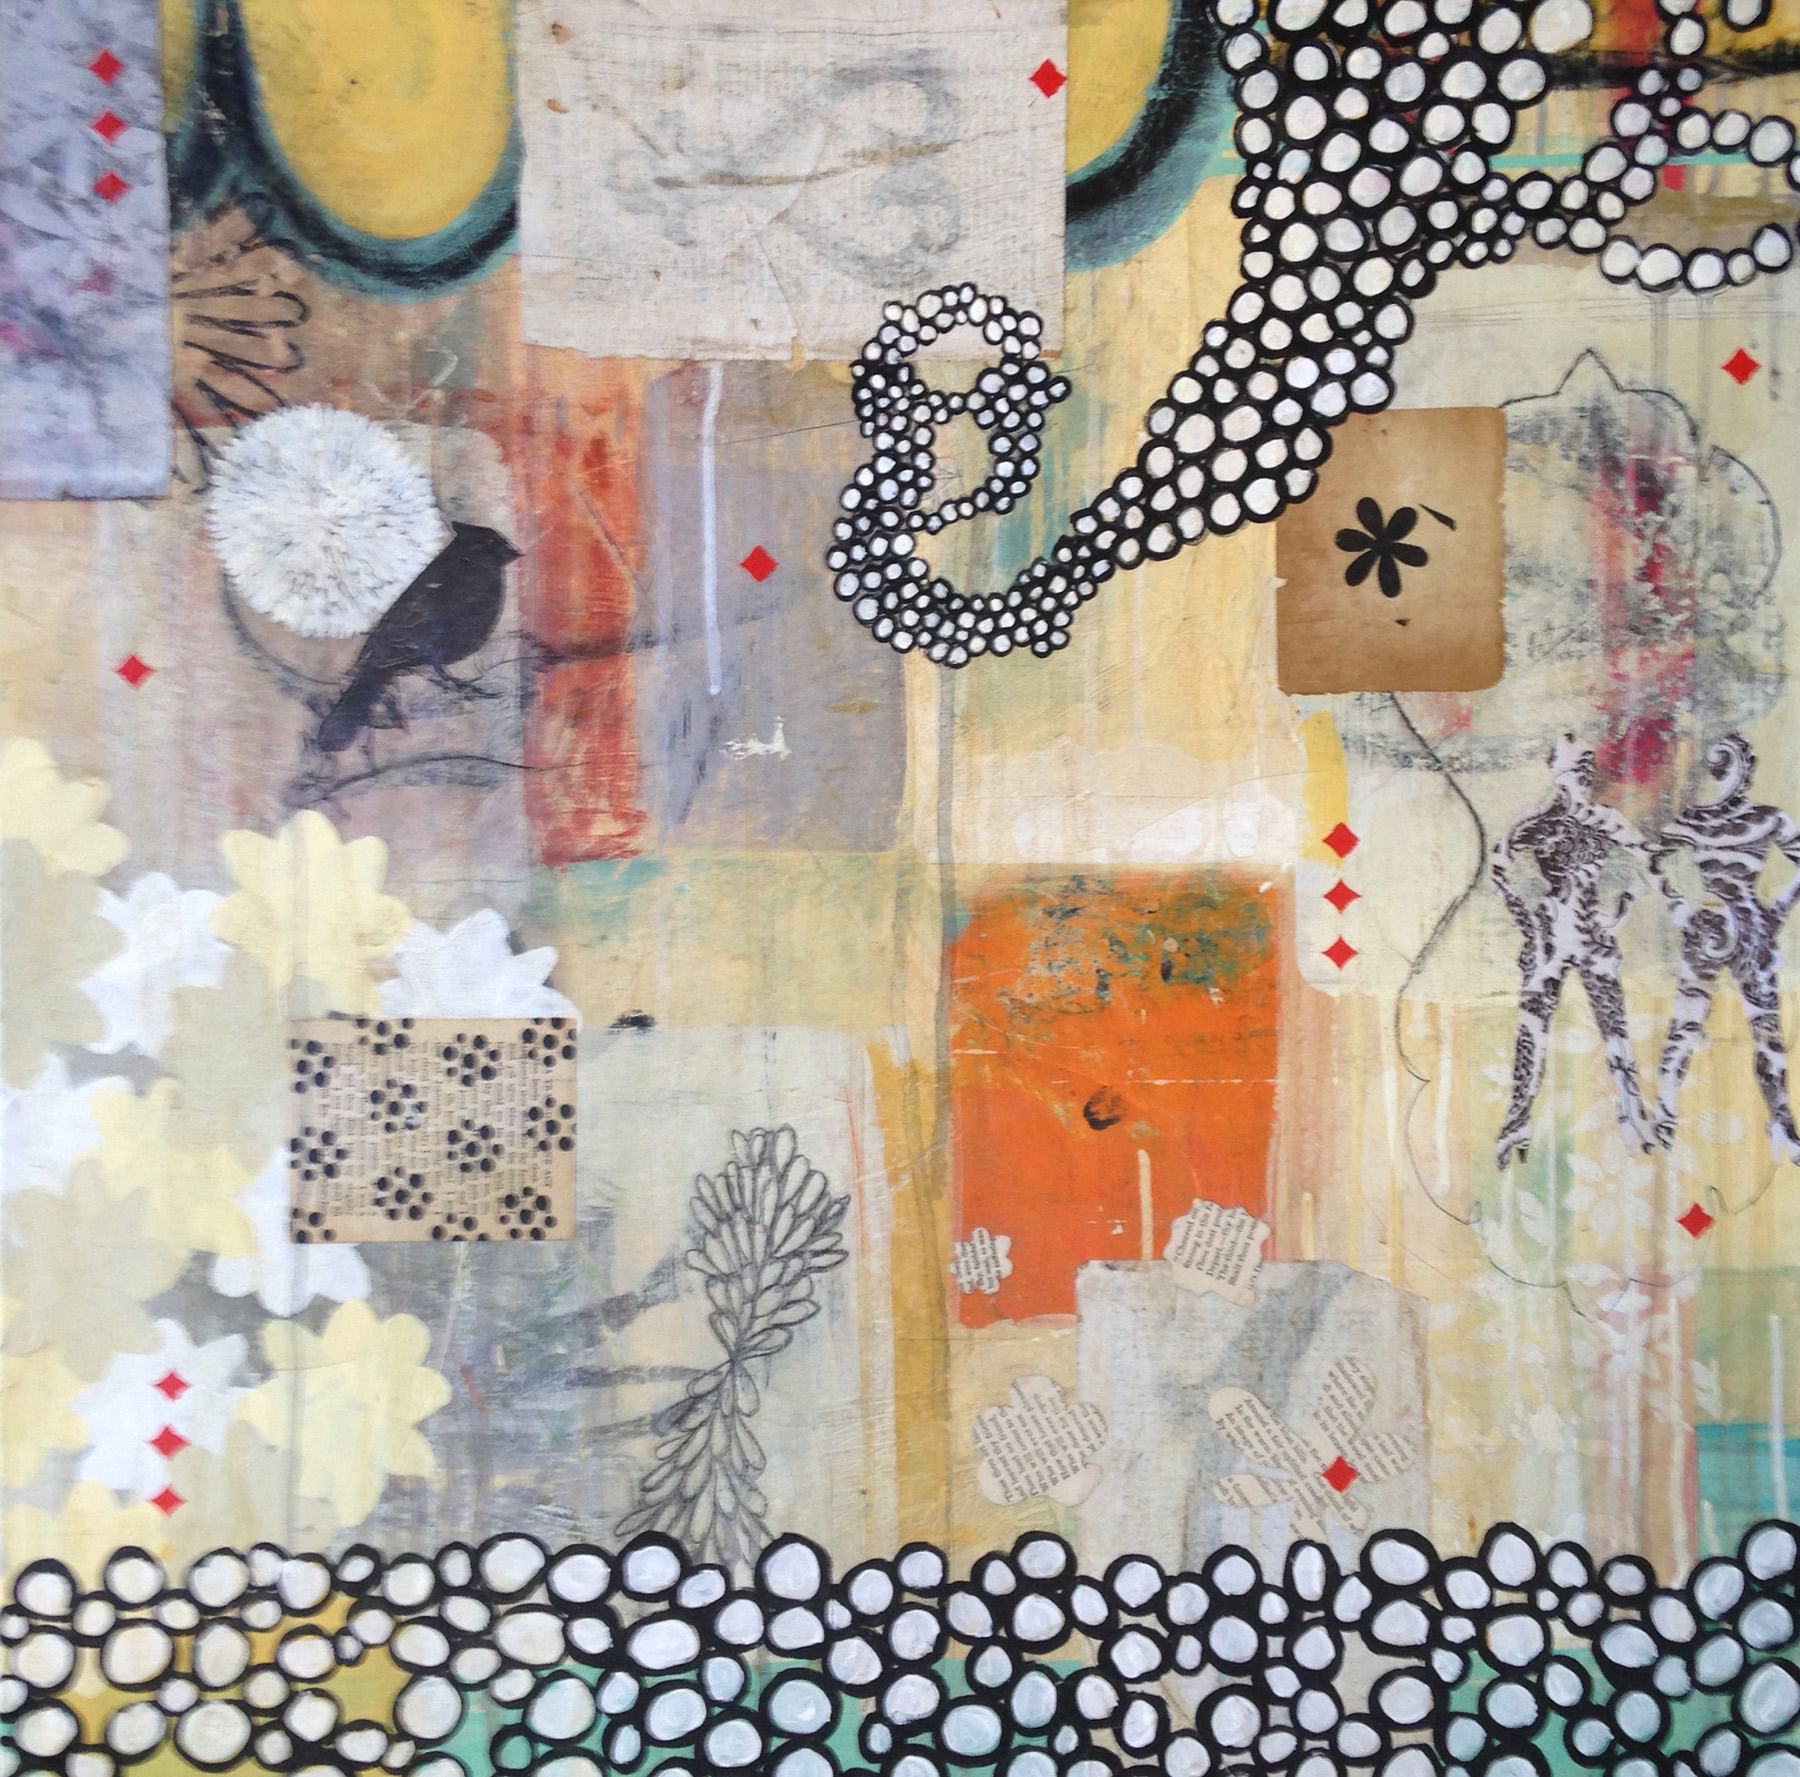 What If?: The Possibilities of Mixed Media Painting